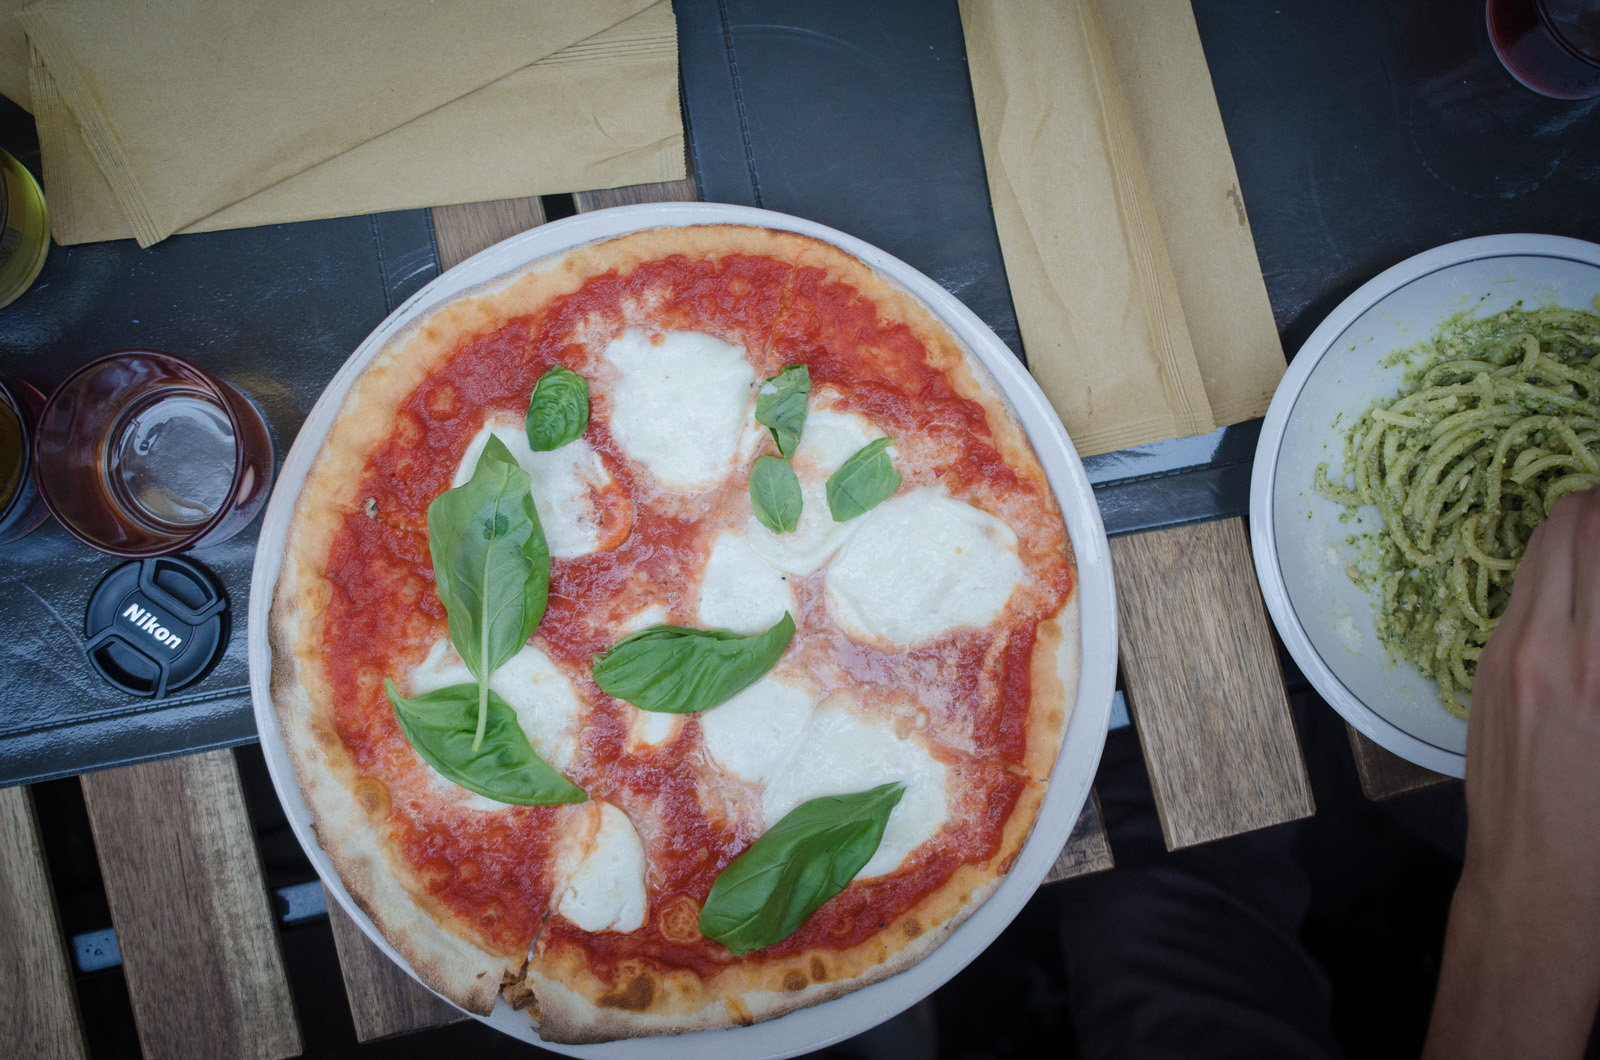 The most classic Roman dish, a Pizza Bufala. Made with fresh tomatoes, Bufala mozzarella, basil, and little else, classic Italian pizzas and pastas always make a satisfying meal.